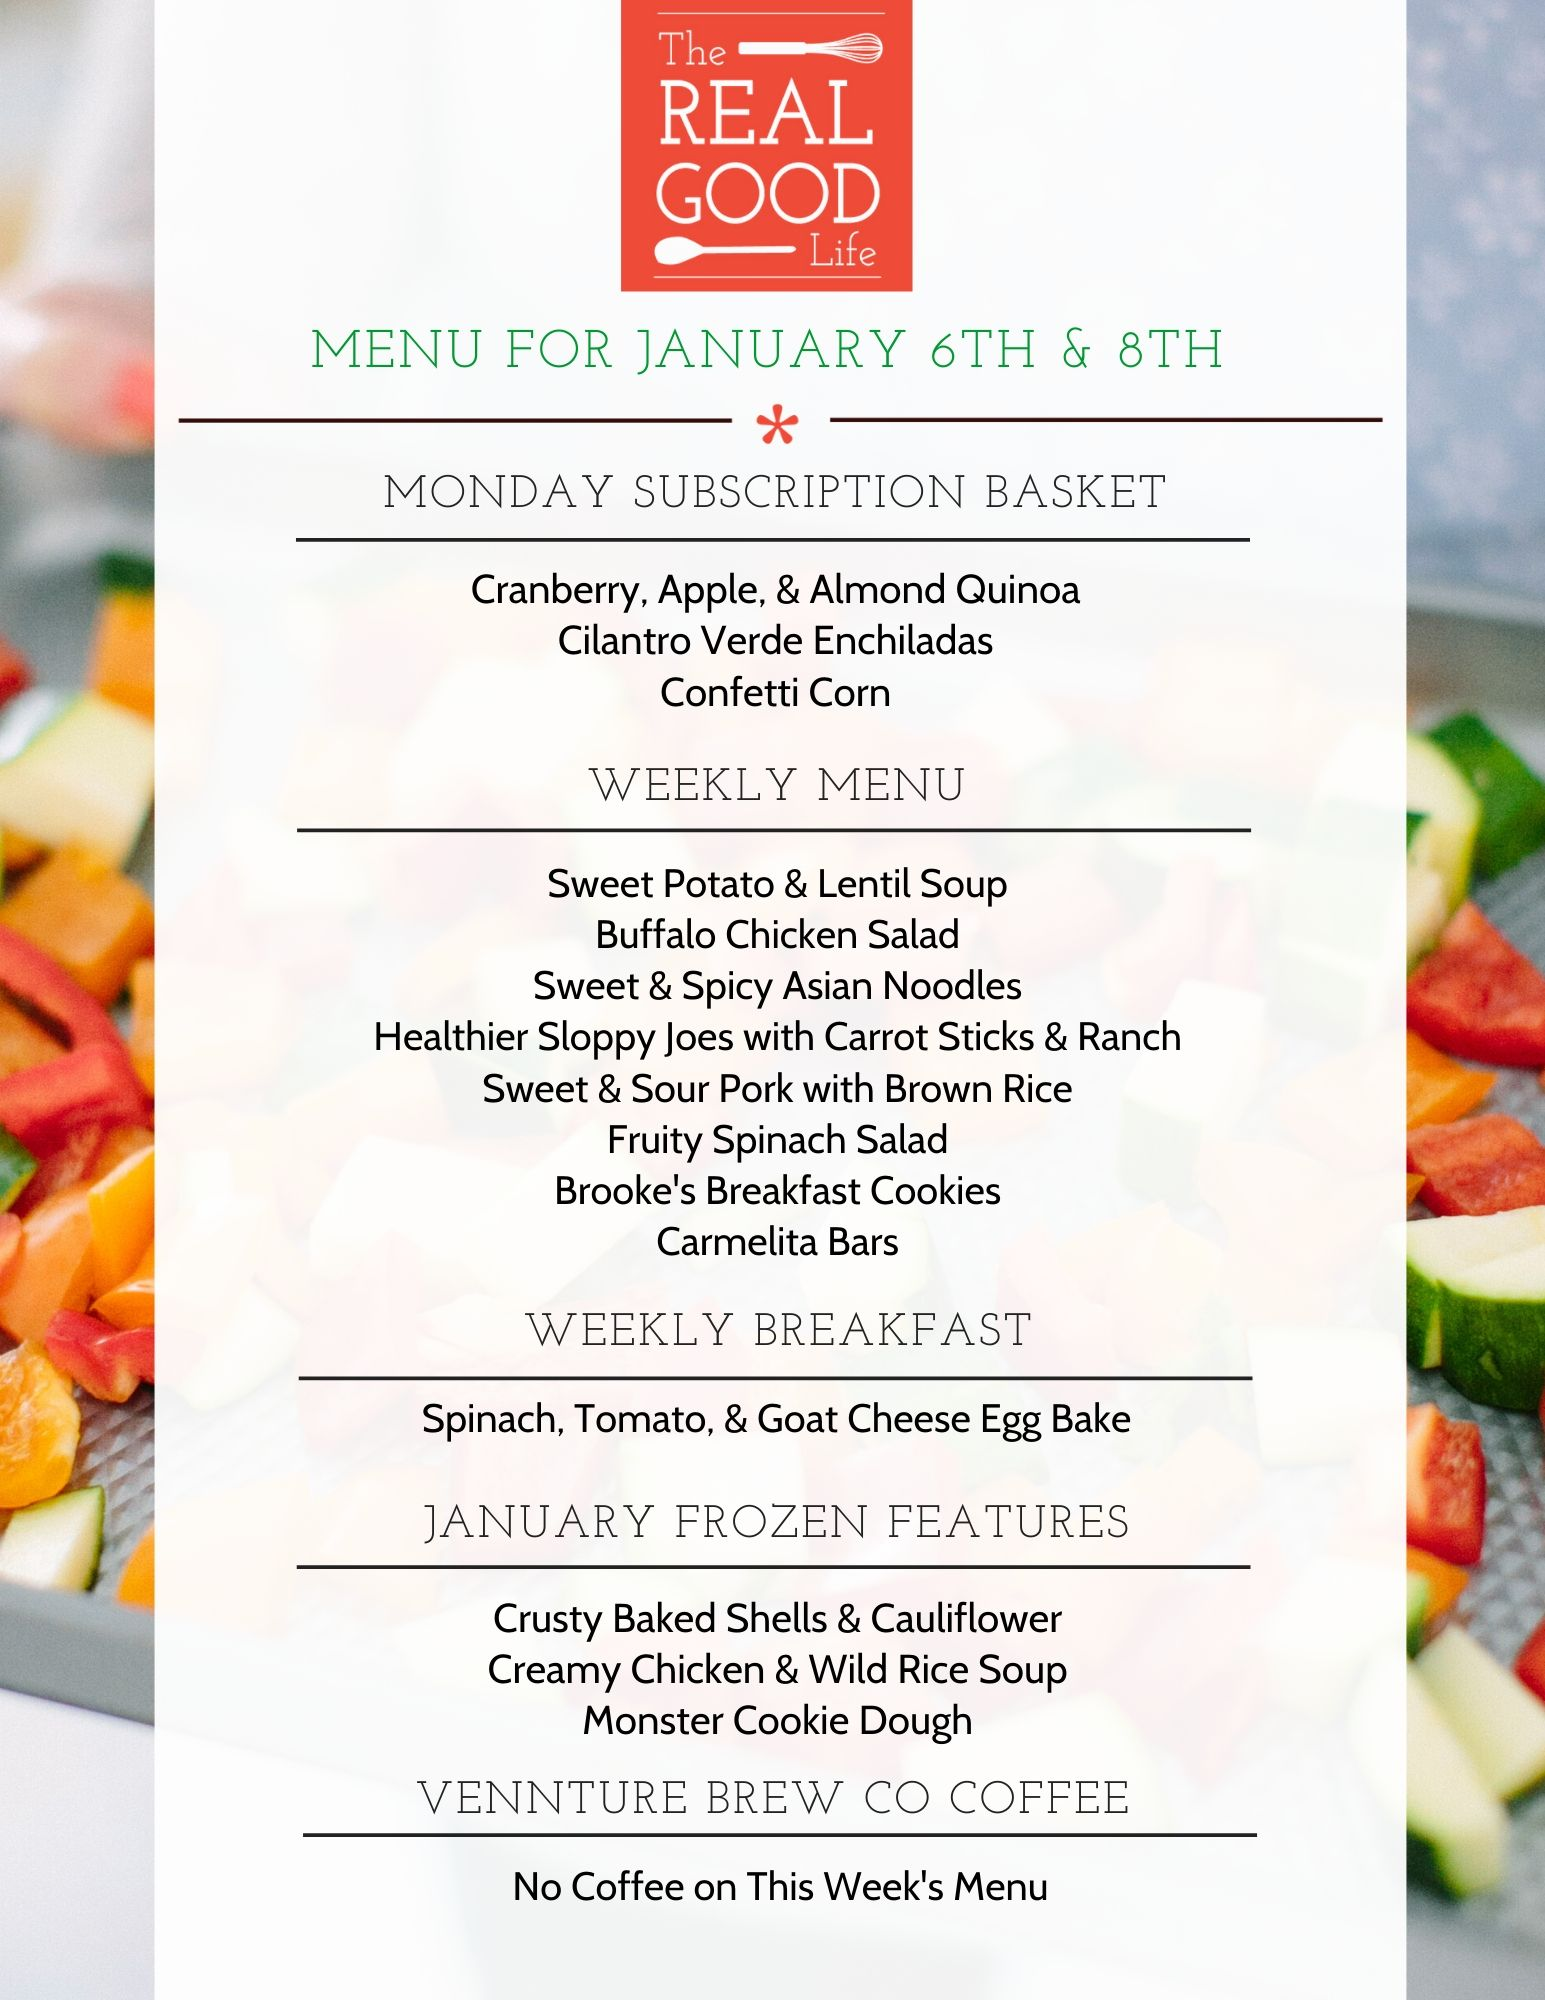 Menu for January 6th and 8th